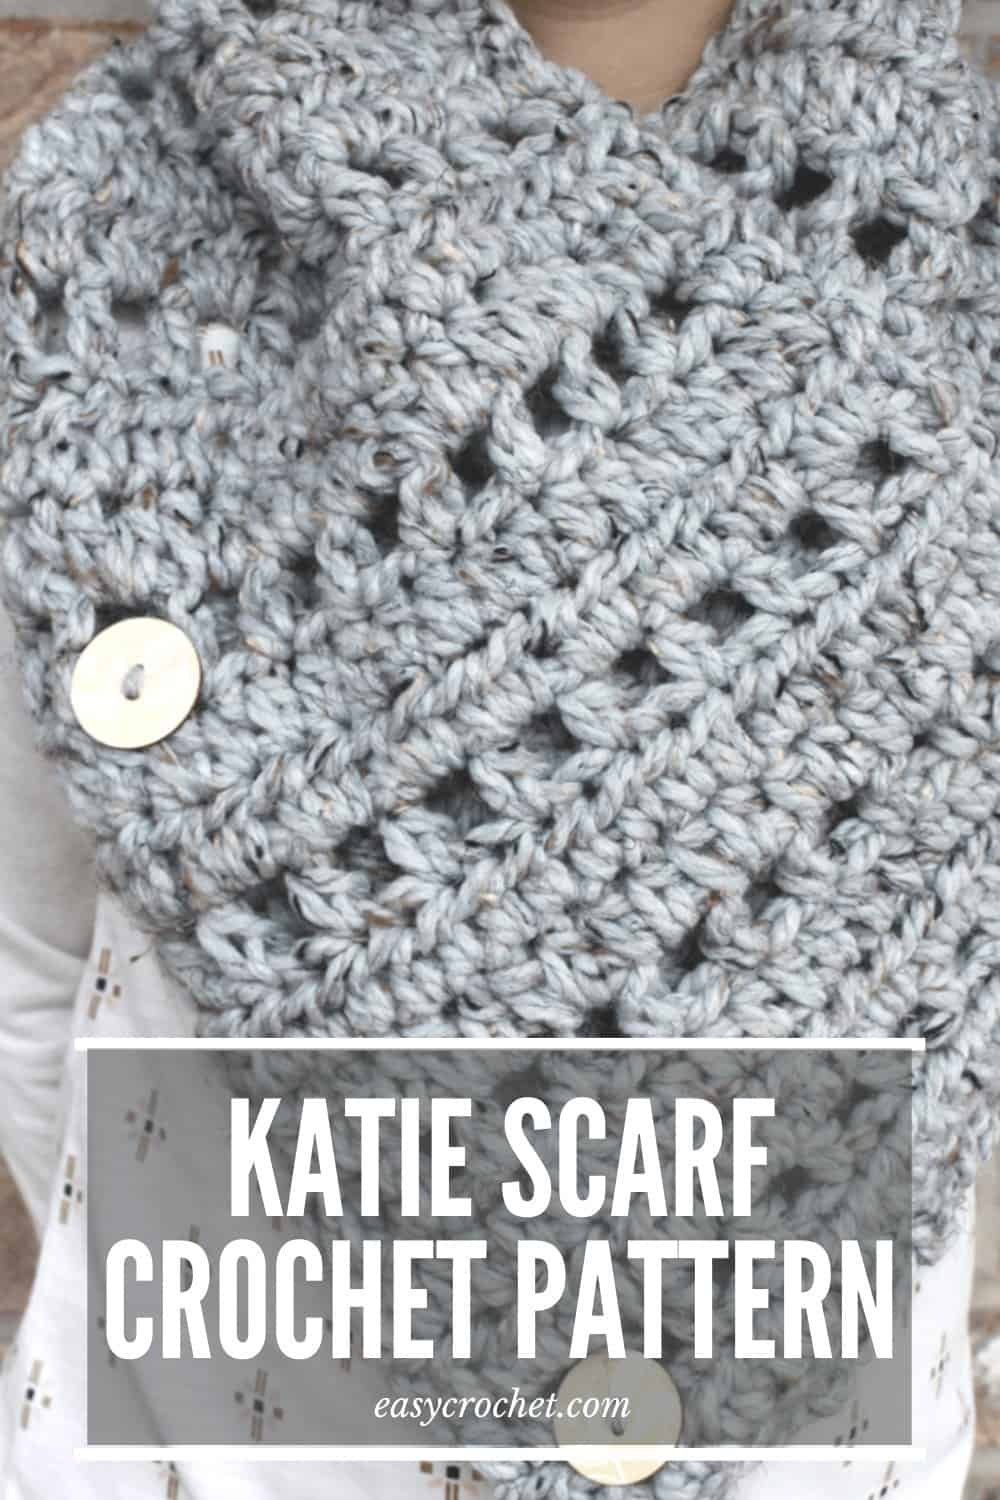 Katie Scarf Free Crochet Scarf Pattern from Easy Crochet - Crochet this easy to make button scarf today! via @easycrochetcom